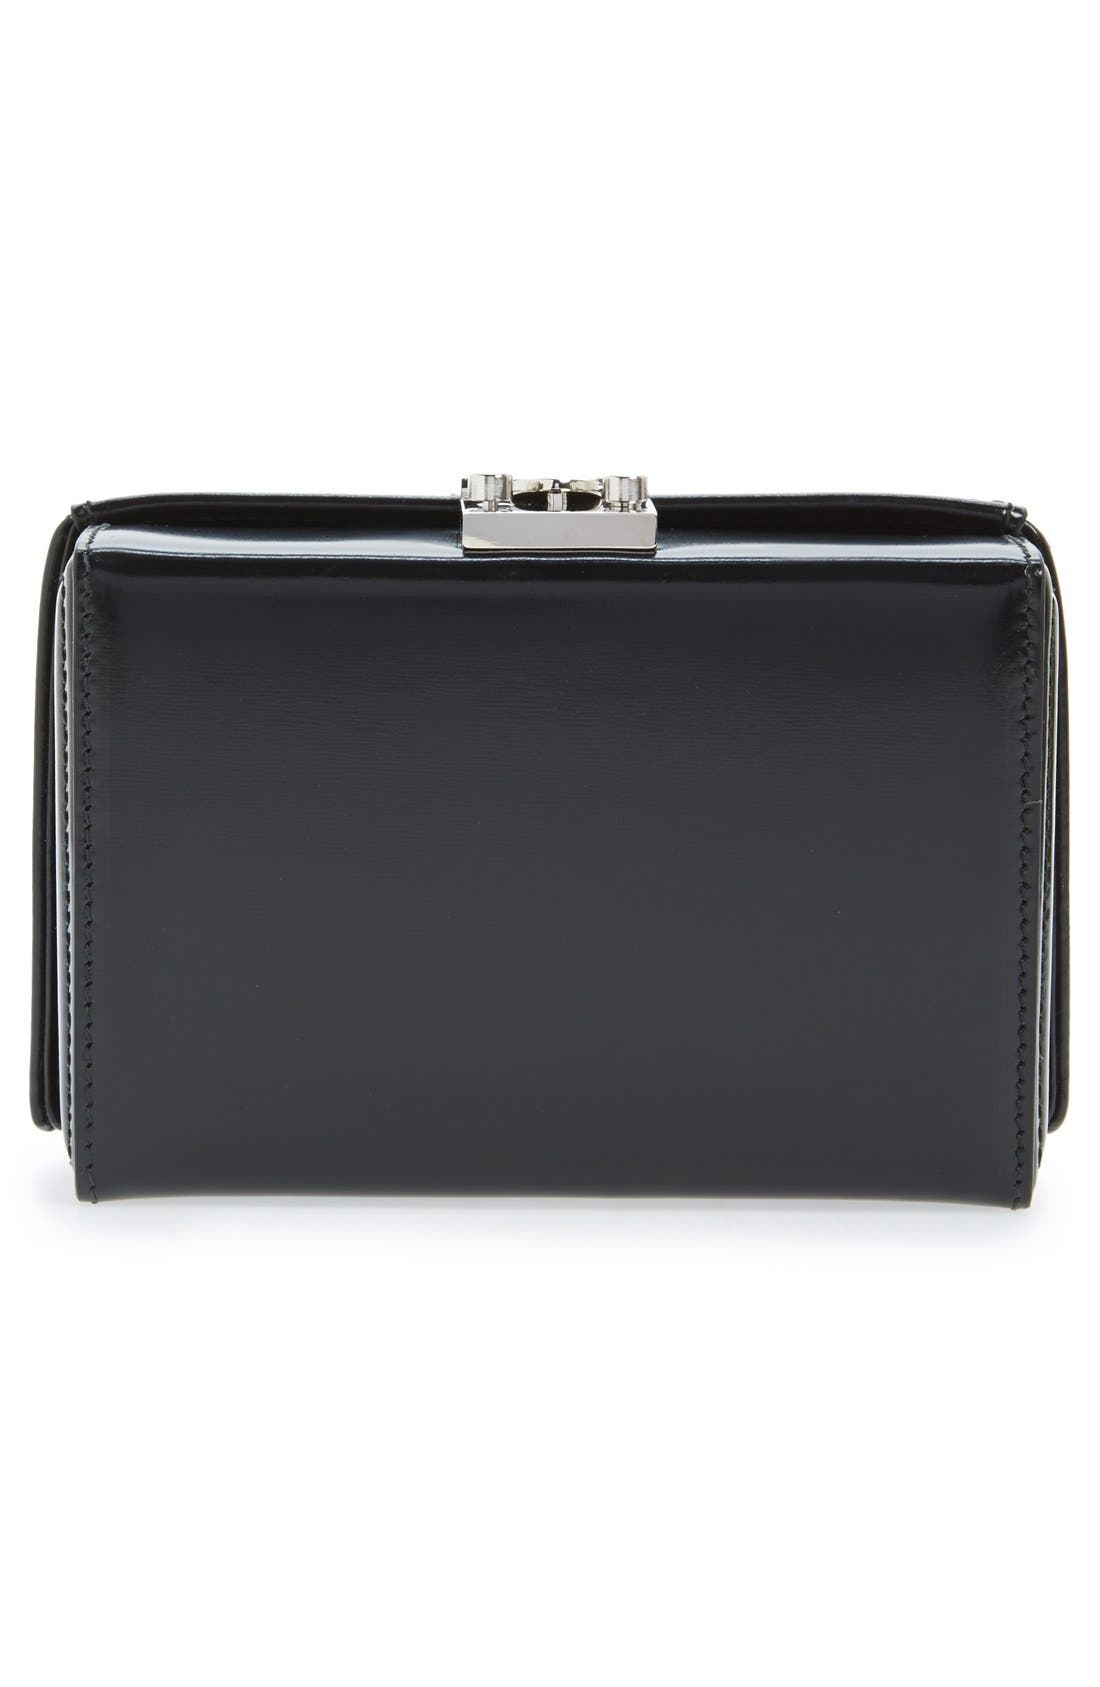 Alternate Image 3  - Mark Cross 'Grace' Spazzolato Leather Clutch